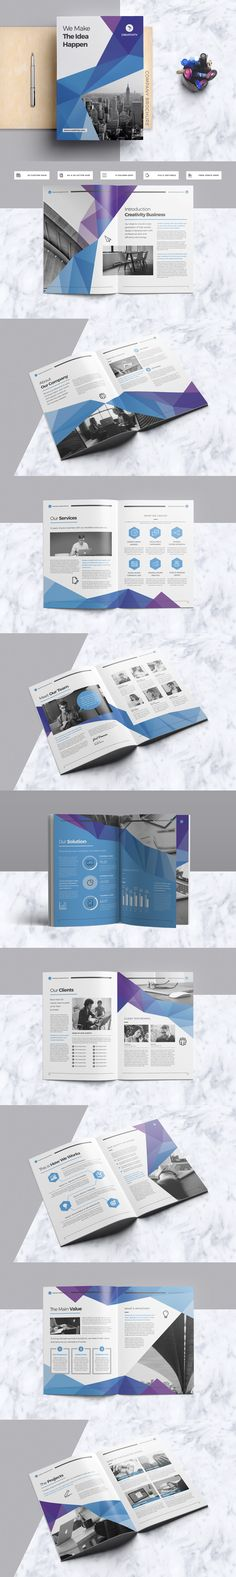 bi fold brochure template pinterest cleaning companies creative design and brochures